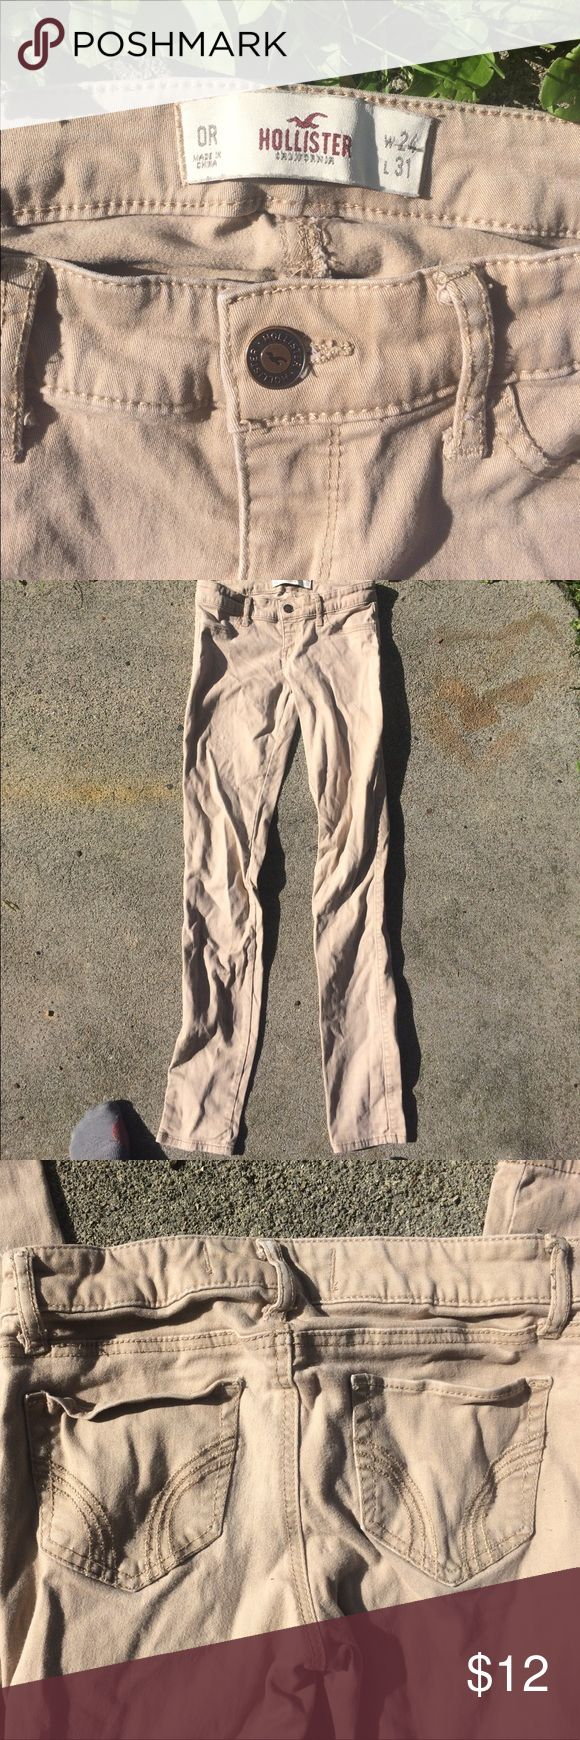 Juniors Hollister Stretch Chinos khakis Wow! Good condition, used hollister pants for so cheap?! That's right! These stretch pants (24 width, 31 length) closely hug your legs making you look tall and thin. A staple in anyone's wardrobe, paired with sneakers, sperrys, whatever! They're chino material but almost like jeggings. You'll look great 😍 Hollister Pants Skinny